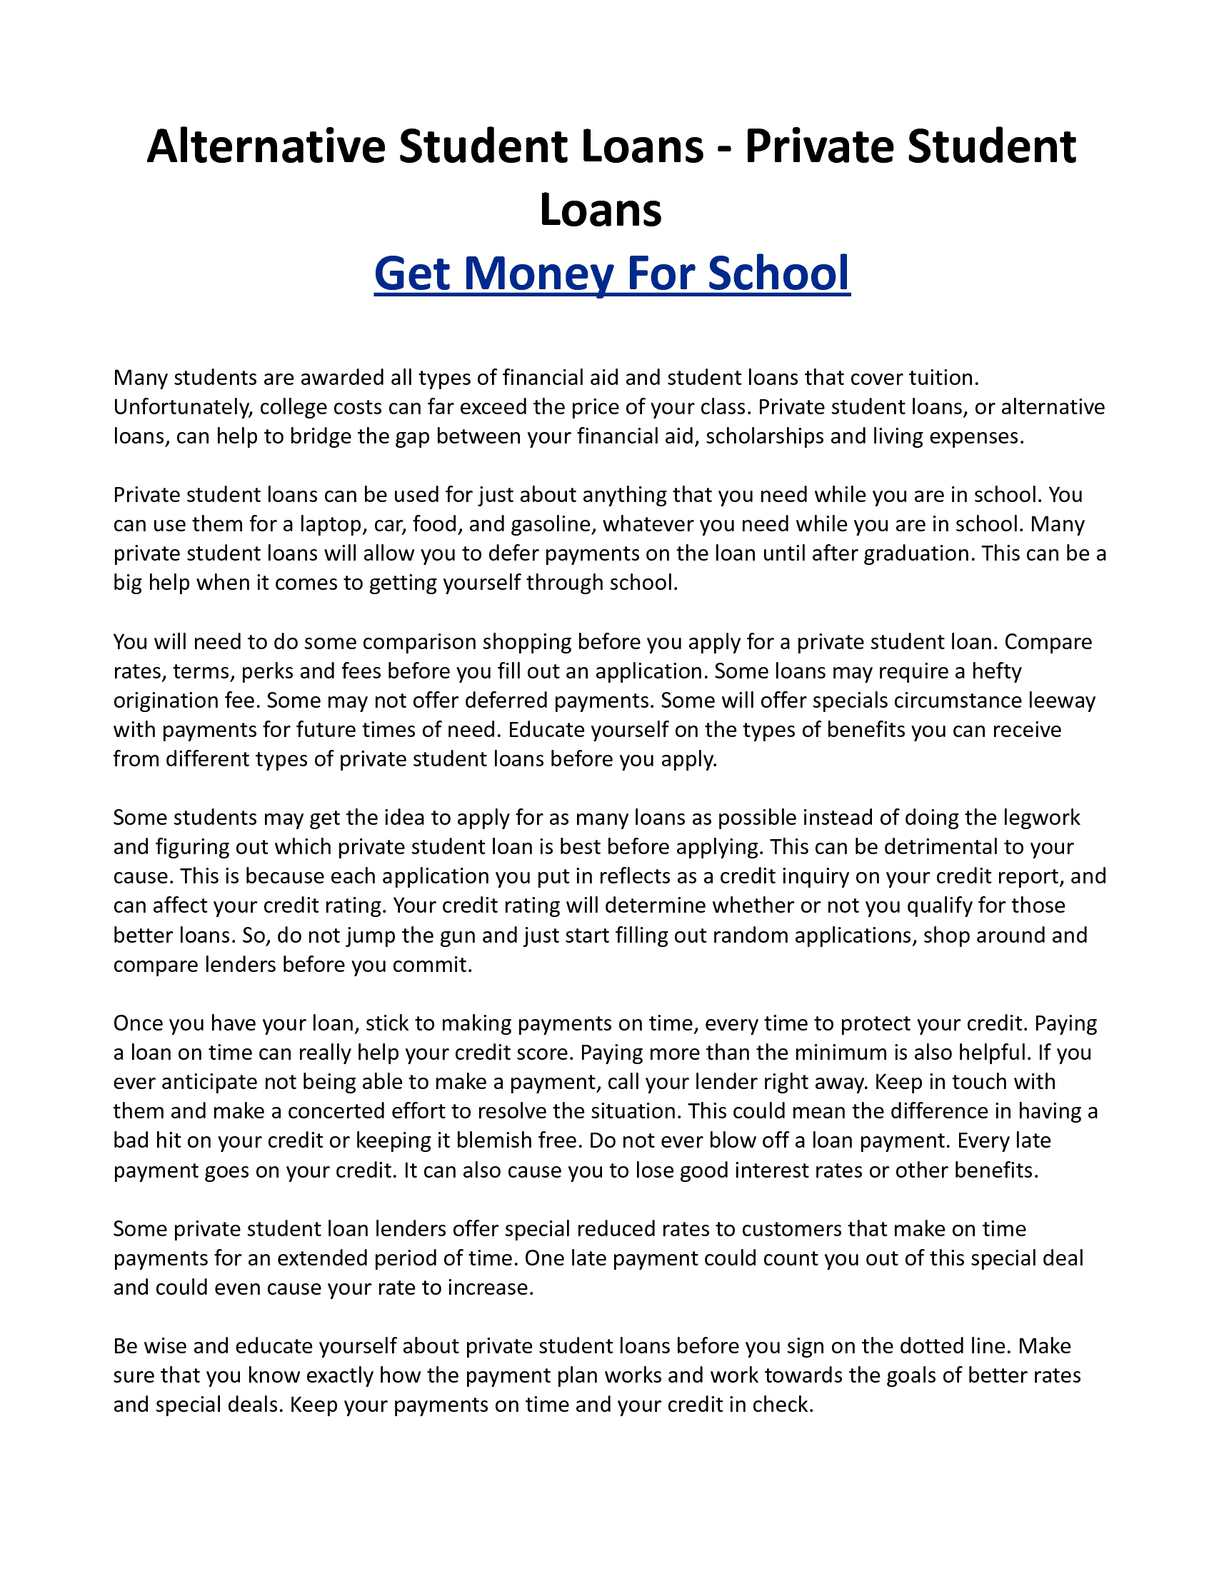 Calaméo - Alternative Student Loans - Private Student Loans